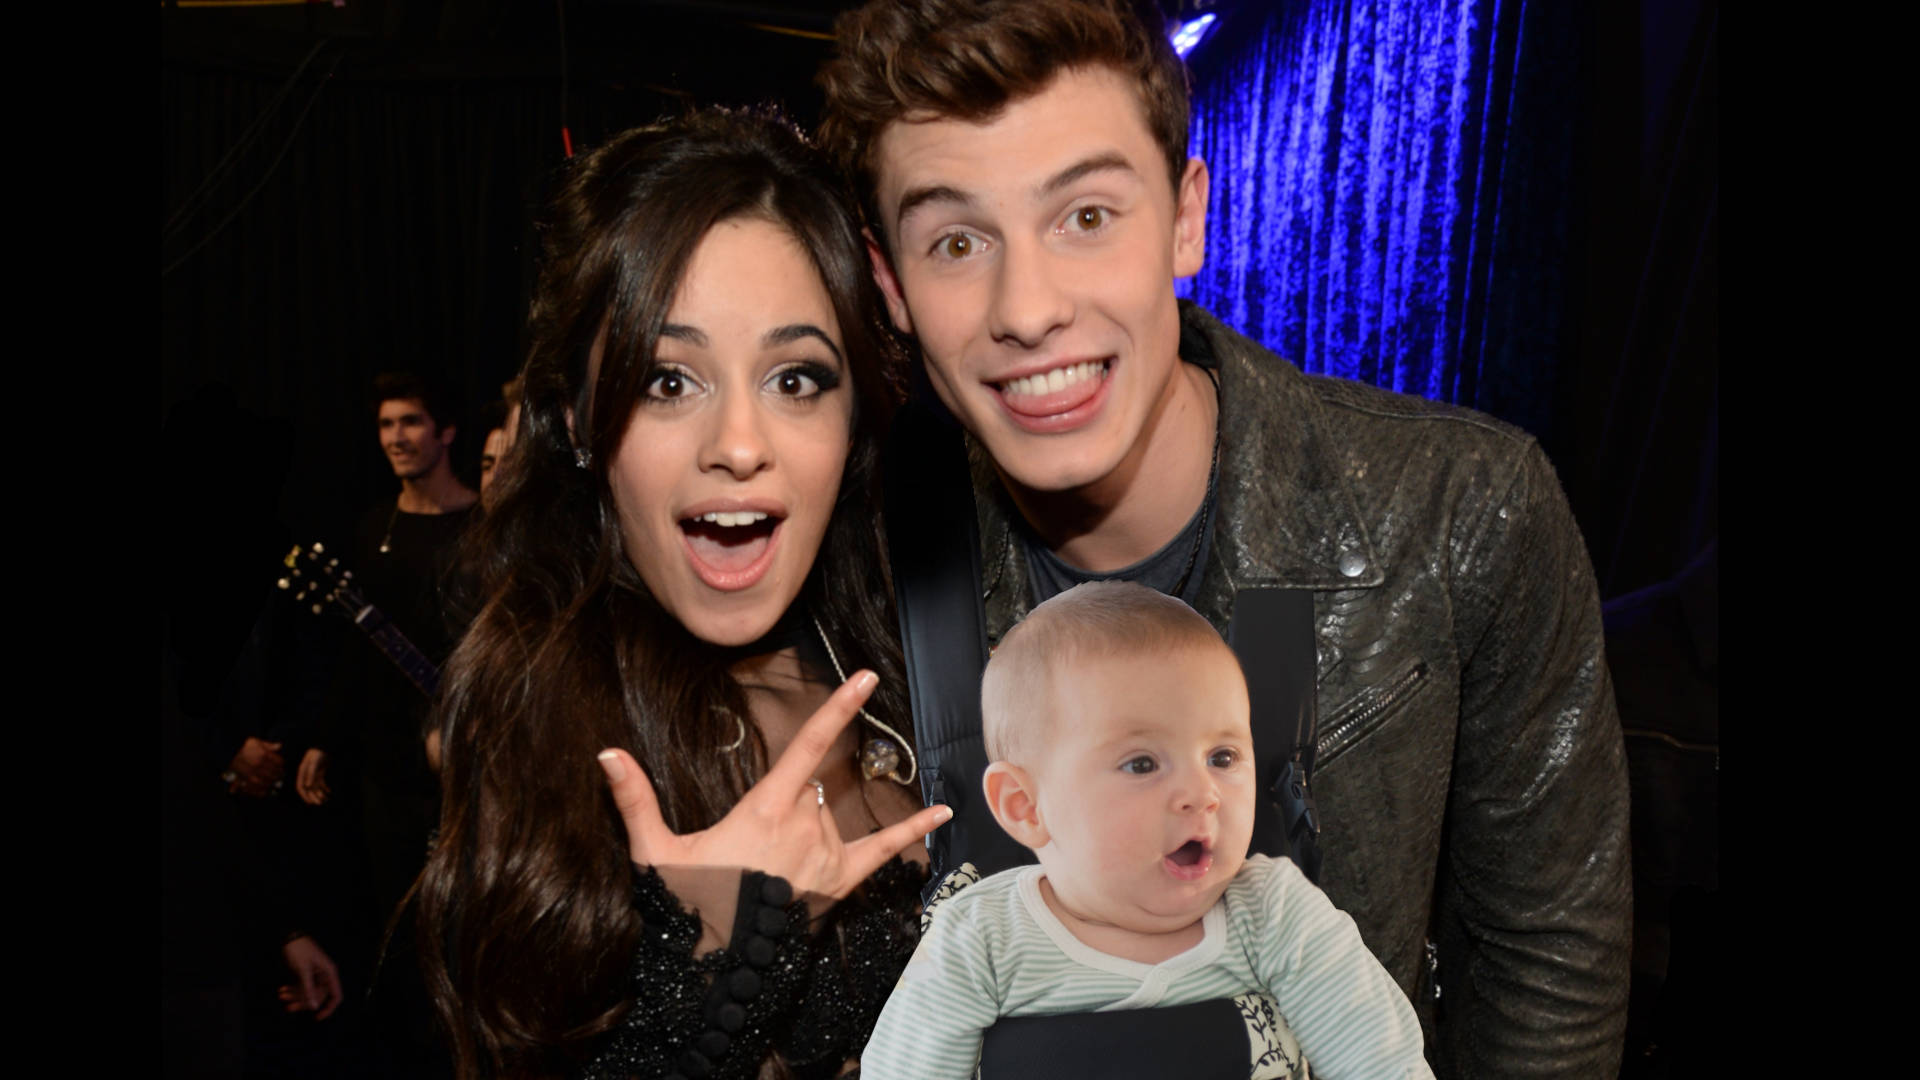 We Used An App To See What Shawn Mendes And Camila Cabello's Babies Would Look Like